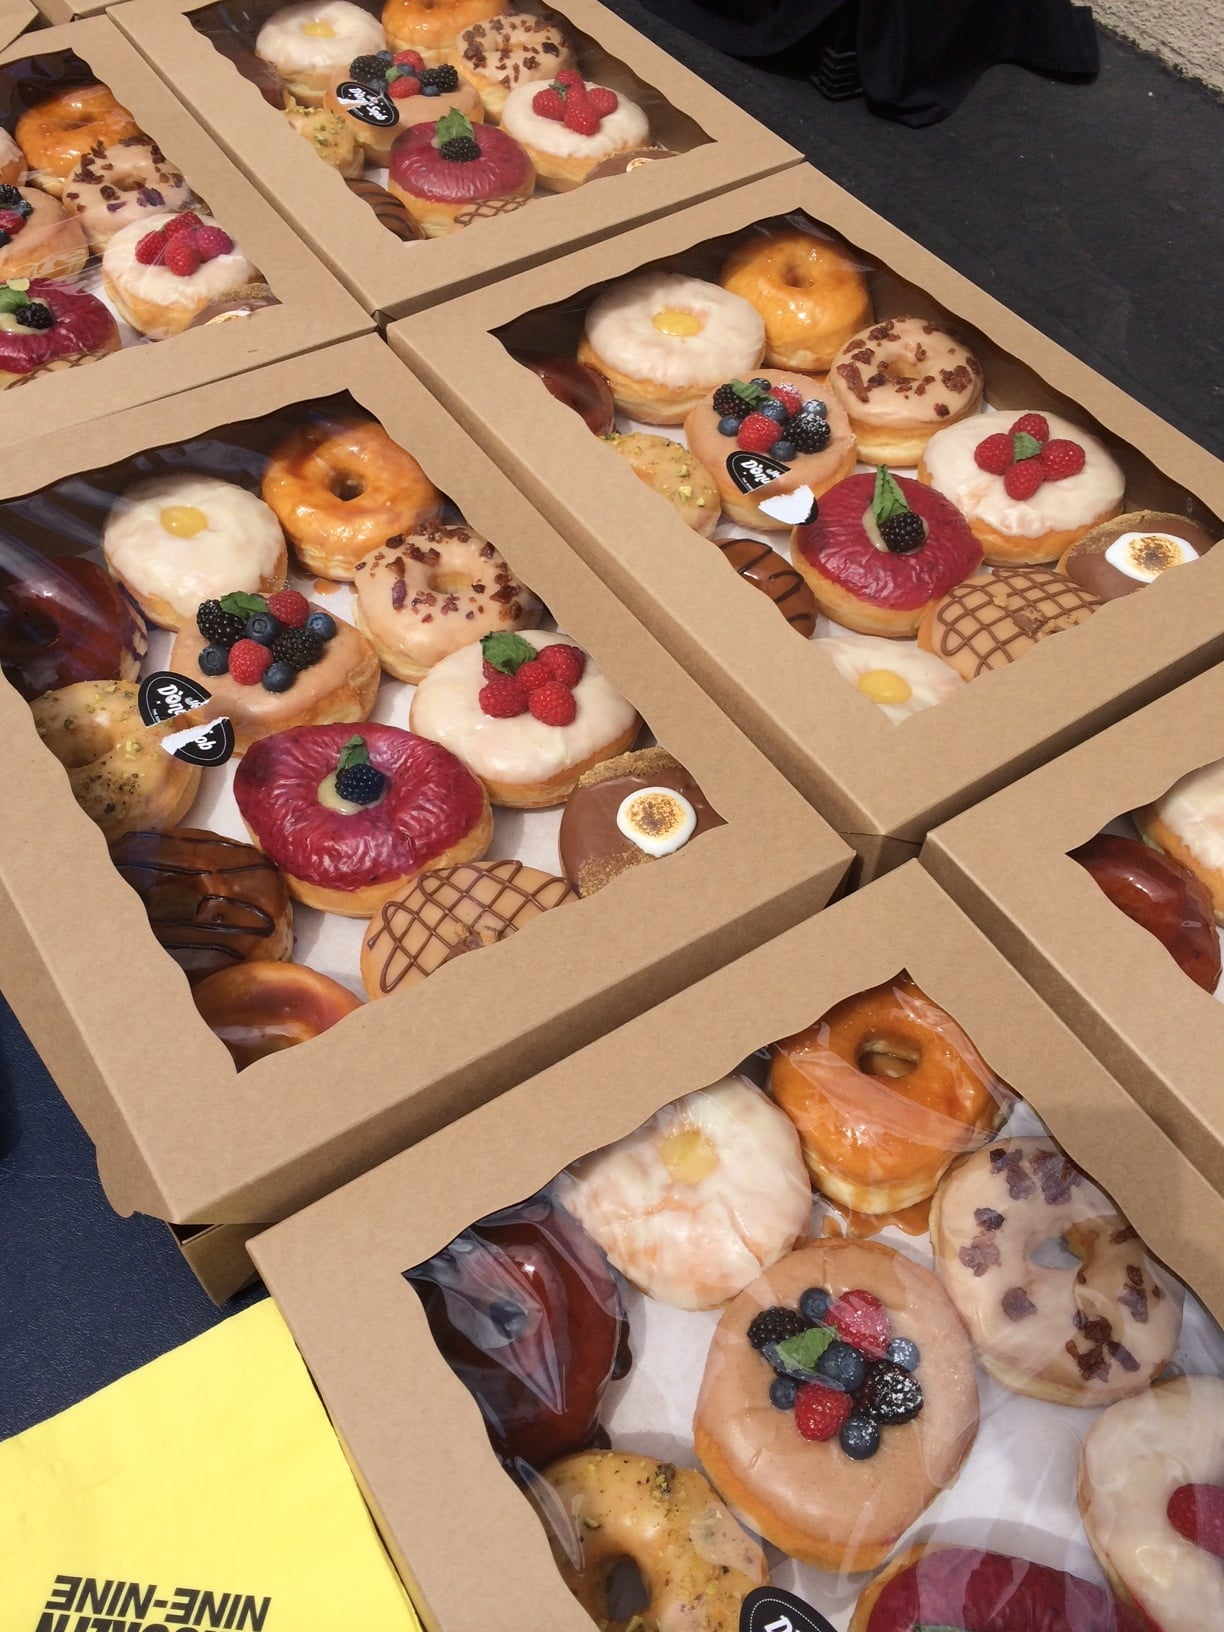 We got doughnuts . . . because cops love doughnuts. Get it? Side note: I had the purple one, and it was delicious.